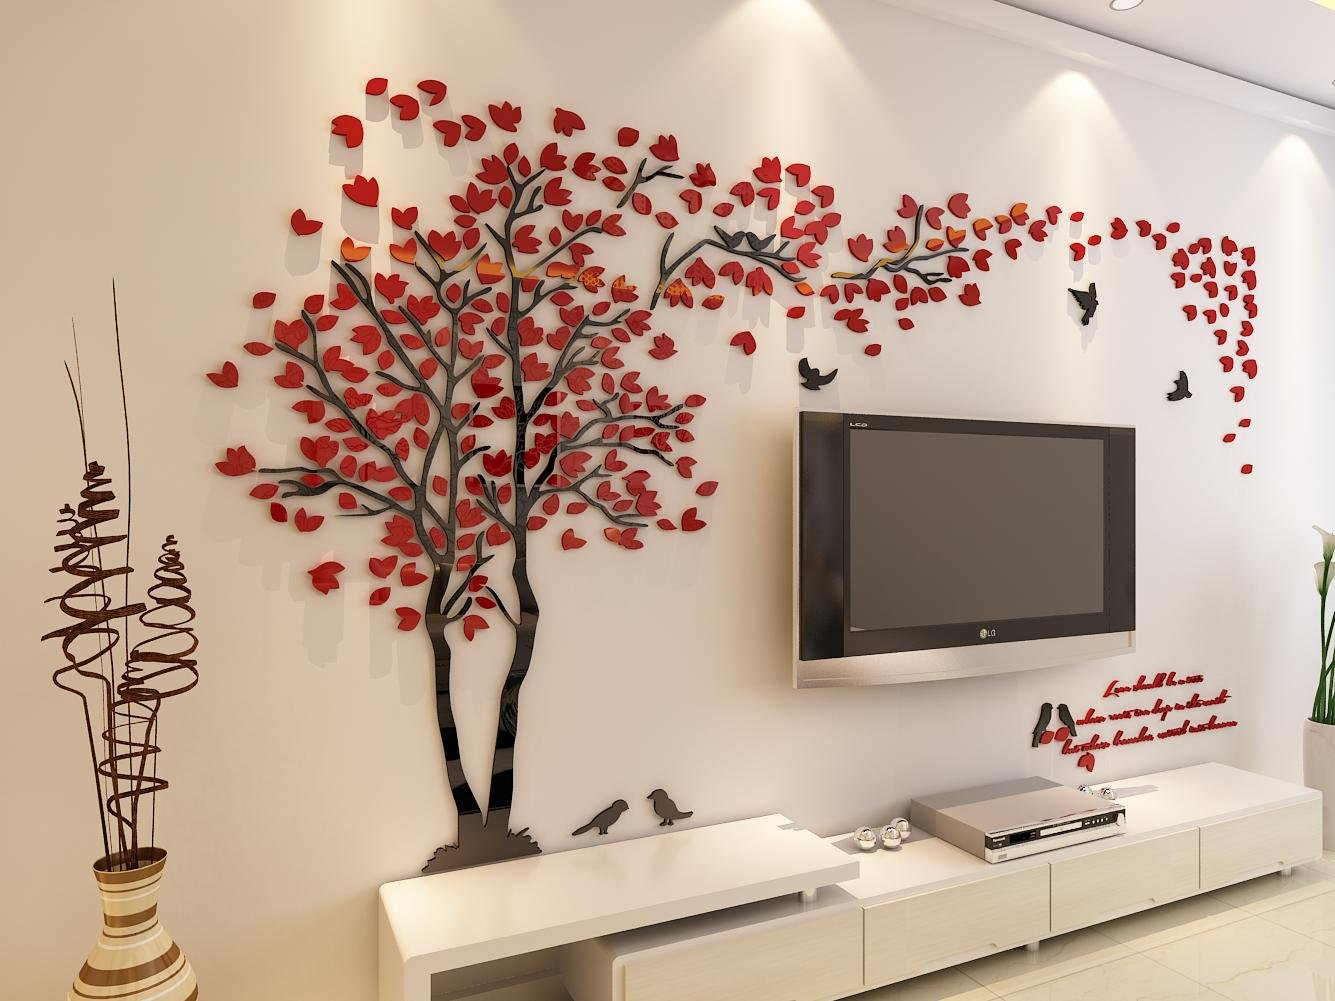 3d Couple Tree Wall Murals for Living Room Bedroom Sofa Backdrop Tv Wall Background, Originality Stickers Gift, DIY Wall Decal Home Decor Art Decorations (Large, Red) by Hermione Baby (Image #3)